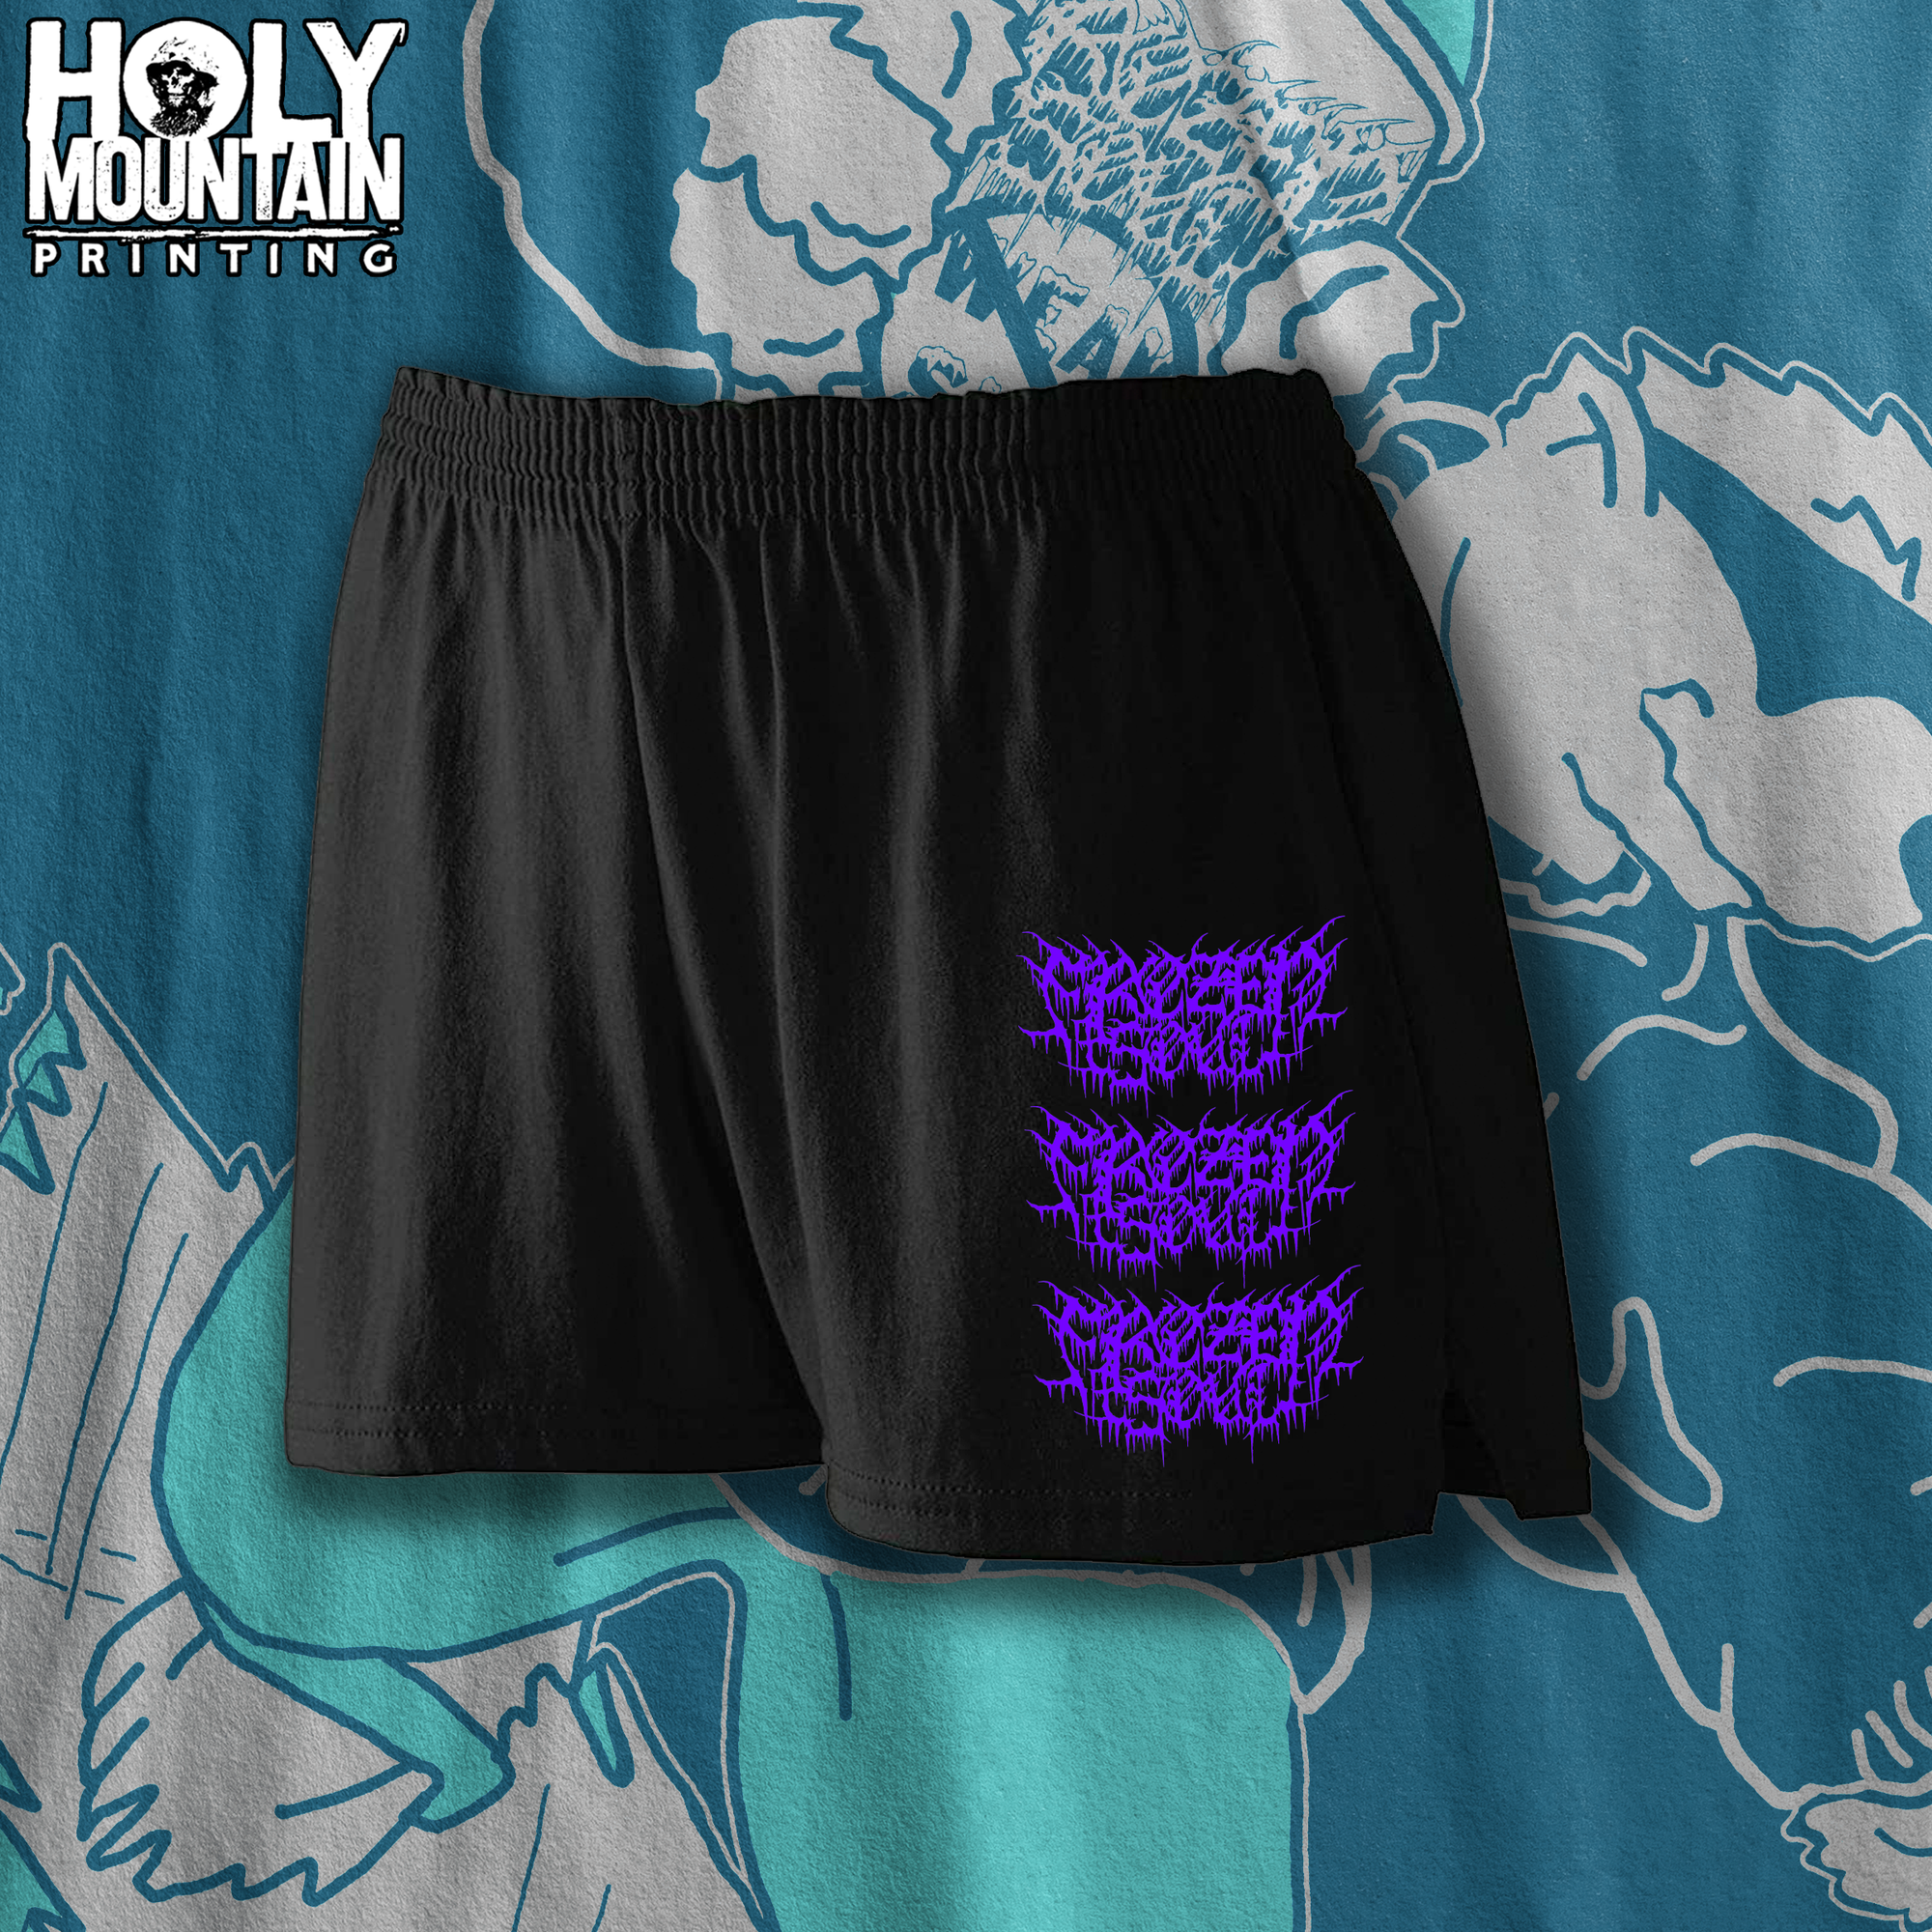 FROZEN SOUL LADIES TRIM FIT TRAINING SHORTS